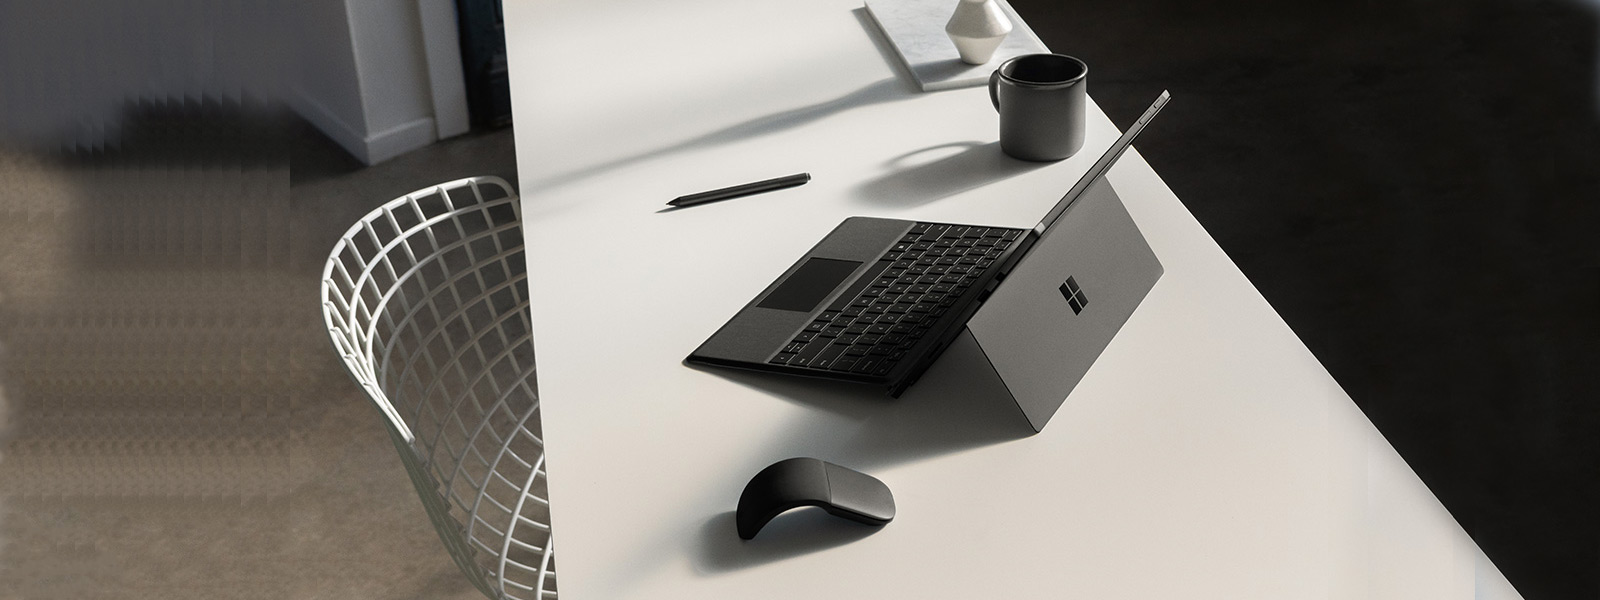 Surface Pro 6 on a desk in laptop mode with Surface Pro Type Cover, Surface Pen, and Surface Arc Mouse